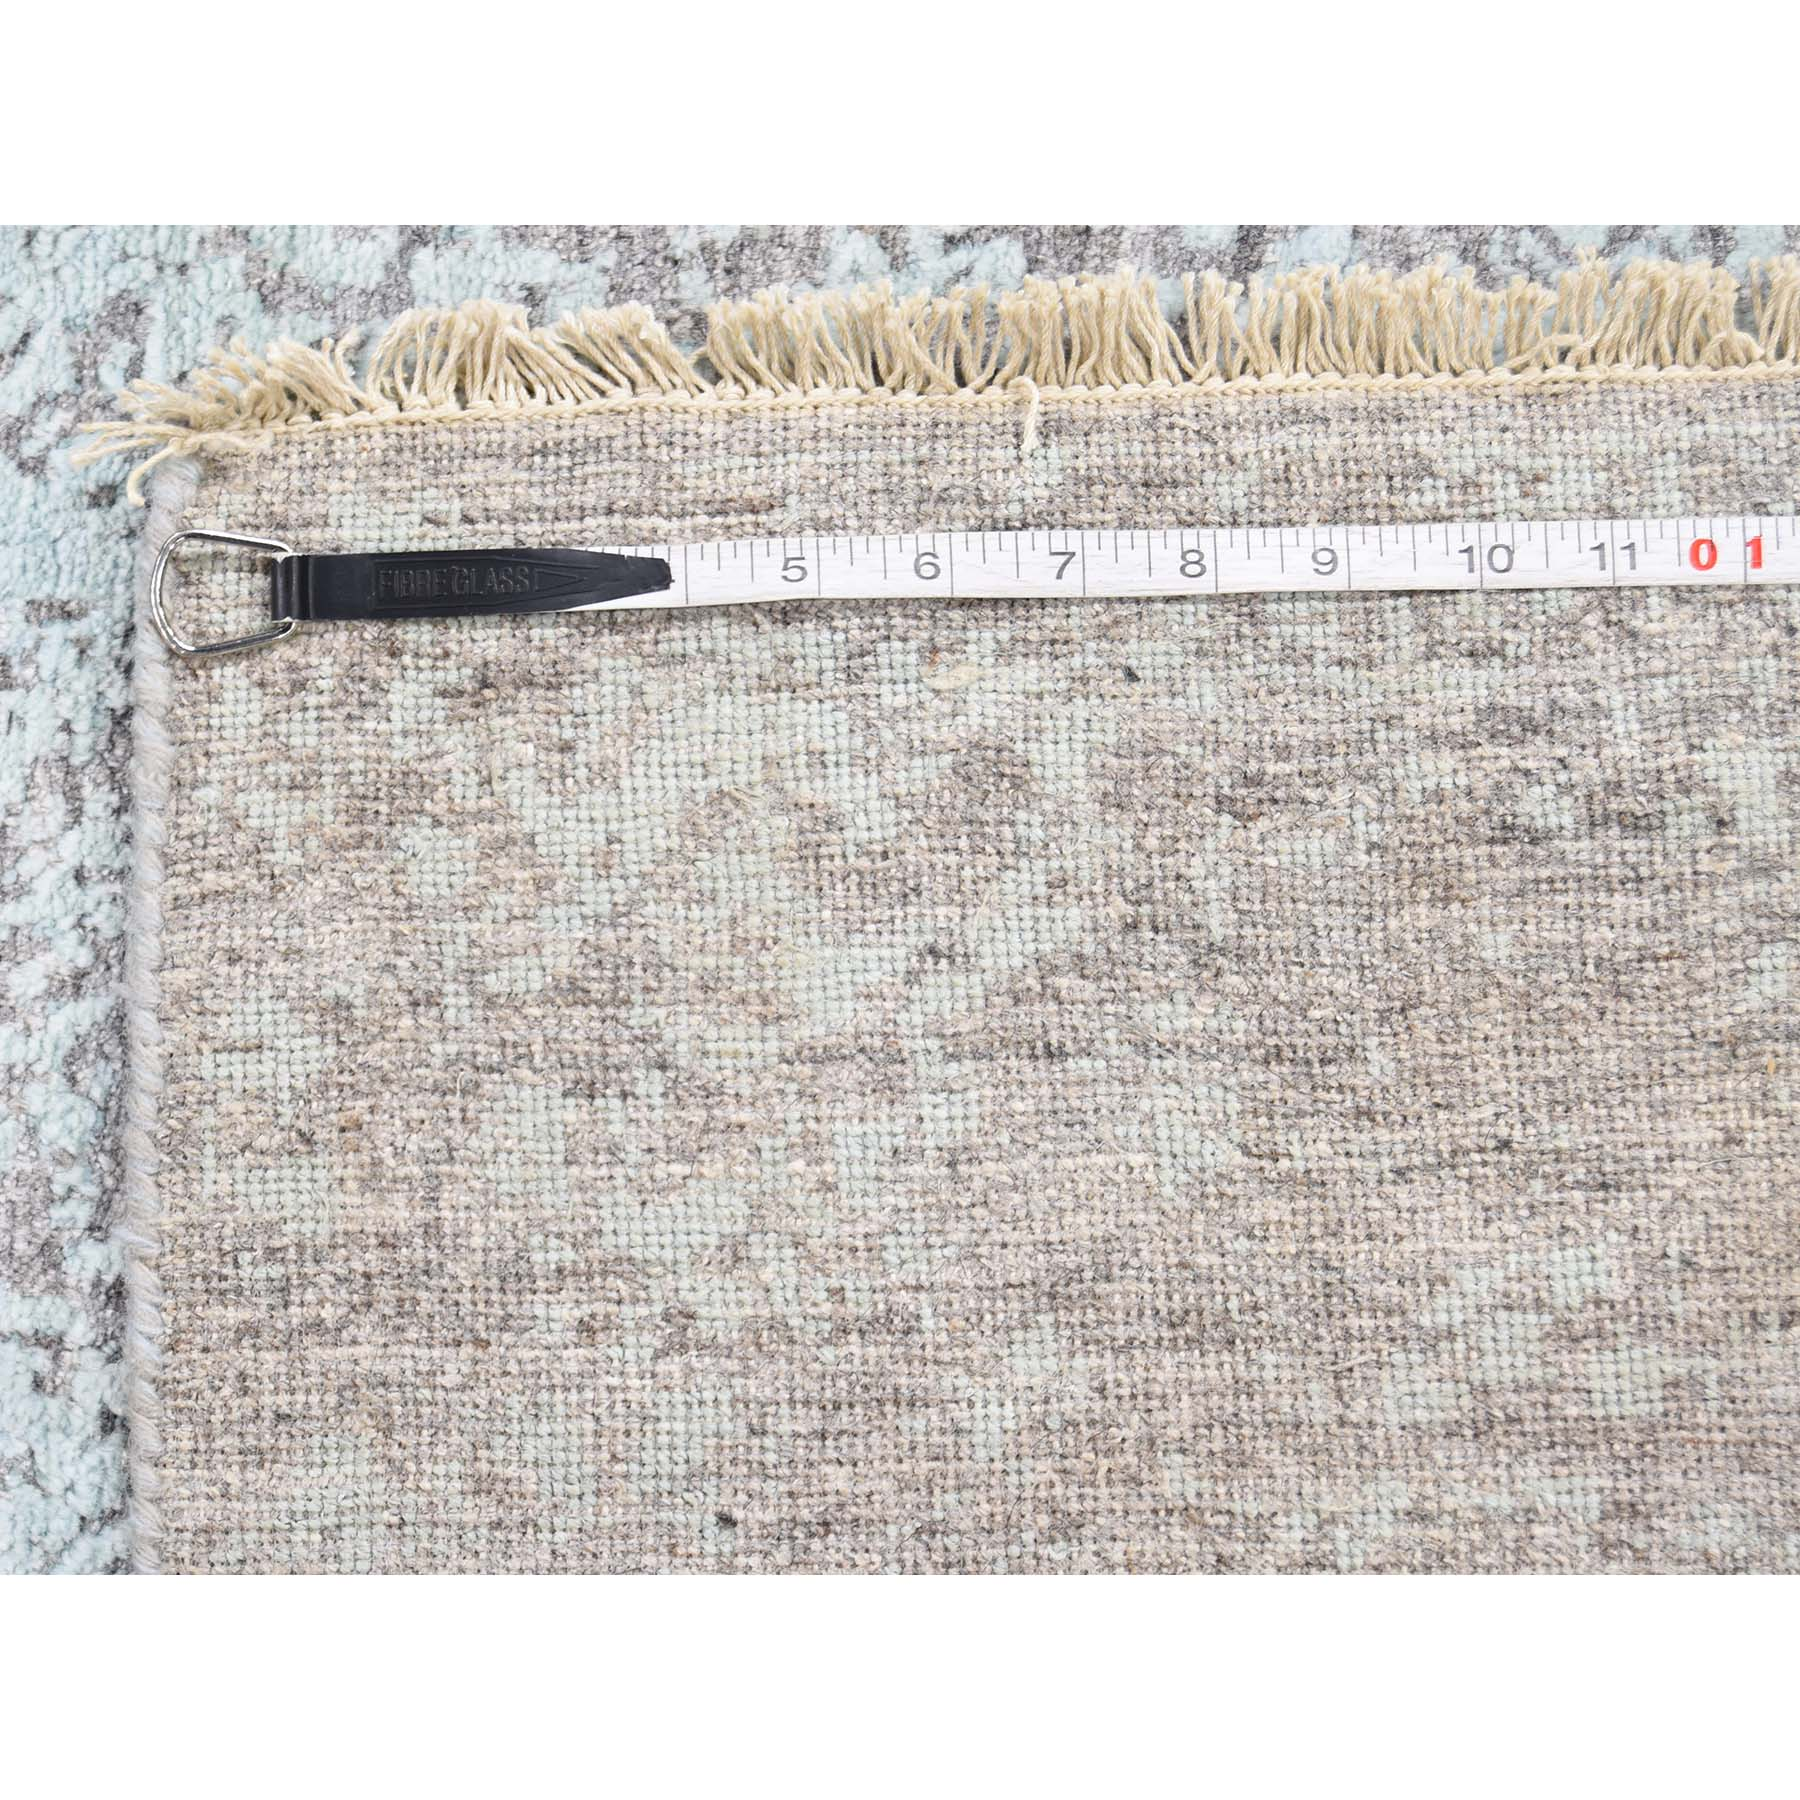 """4'x9'9"""" Broken Persian Design Wool And Silk Hand-Knotted Wide Runner Rug"""